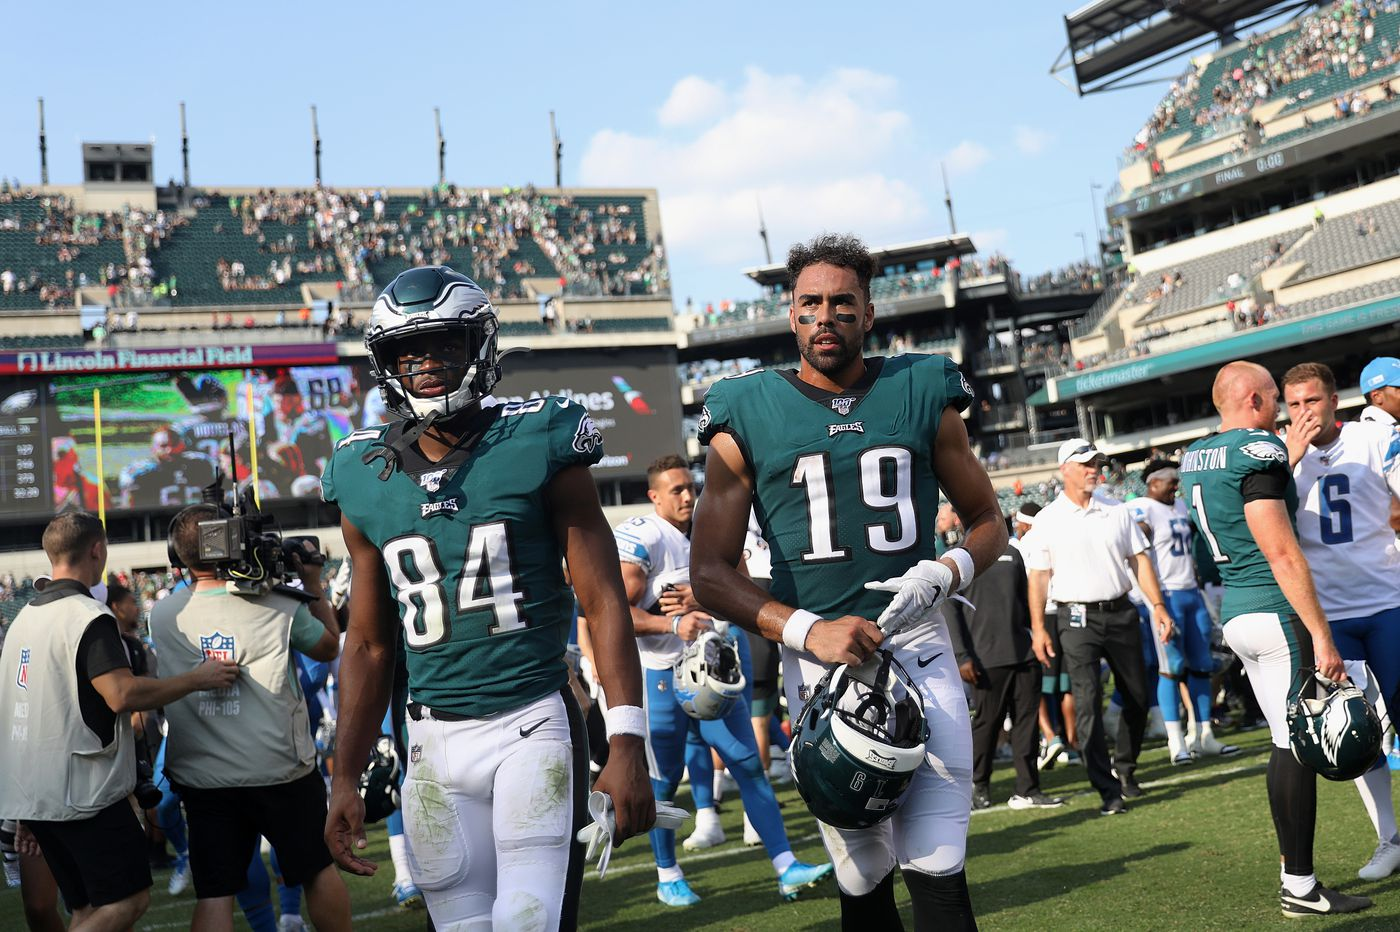 Injuries have hurt the Eagles' wide receivers group, but leadership and coaching also figure into its struggles